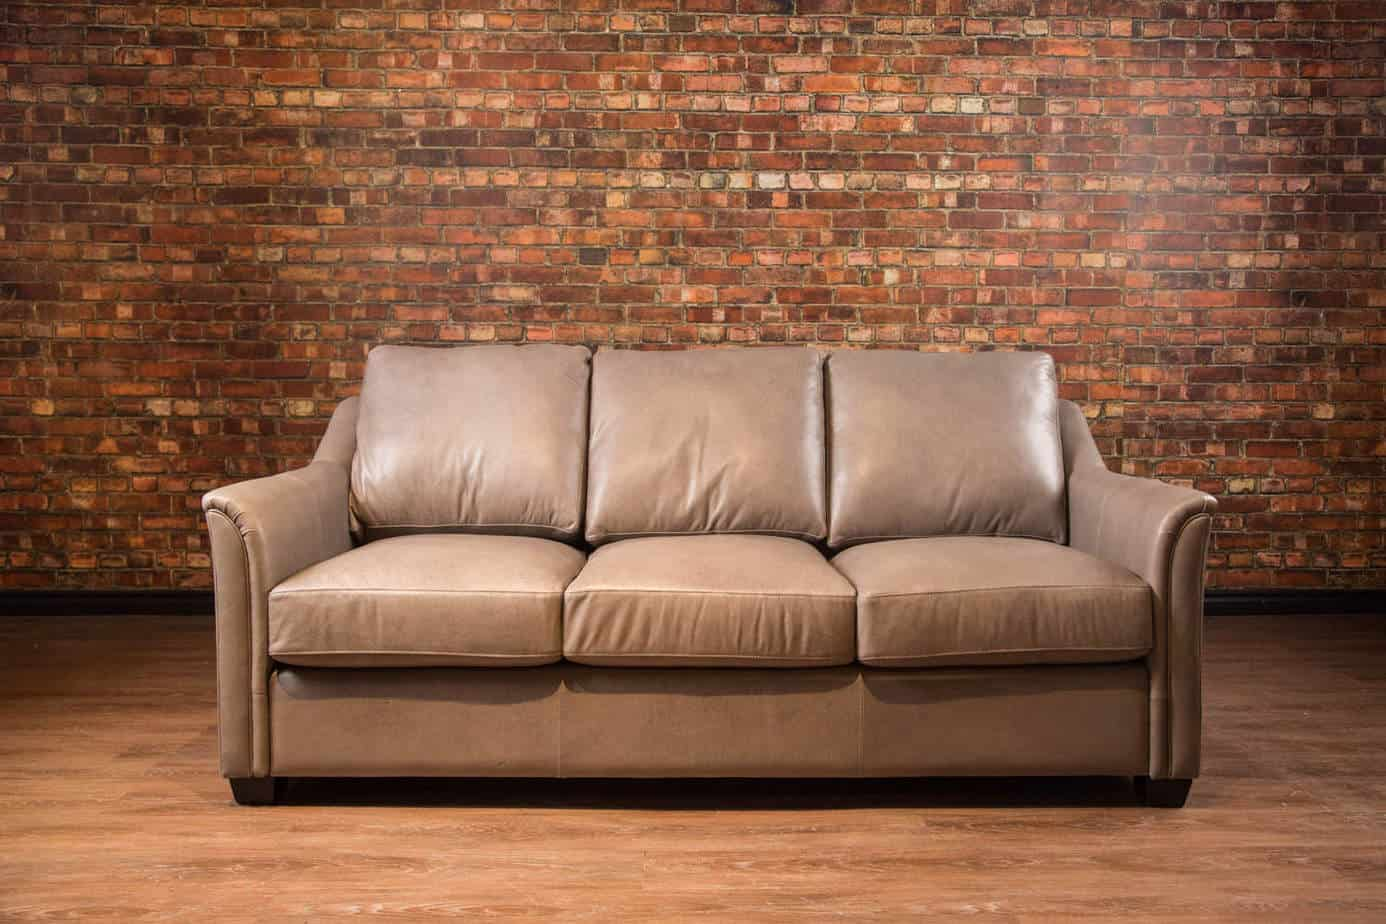 The San Antonio Leather Sofa Canada S Boss Leather Sofas